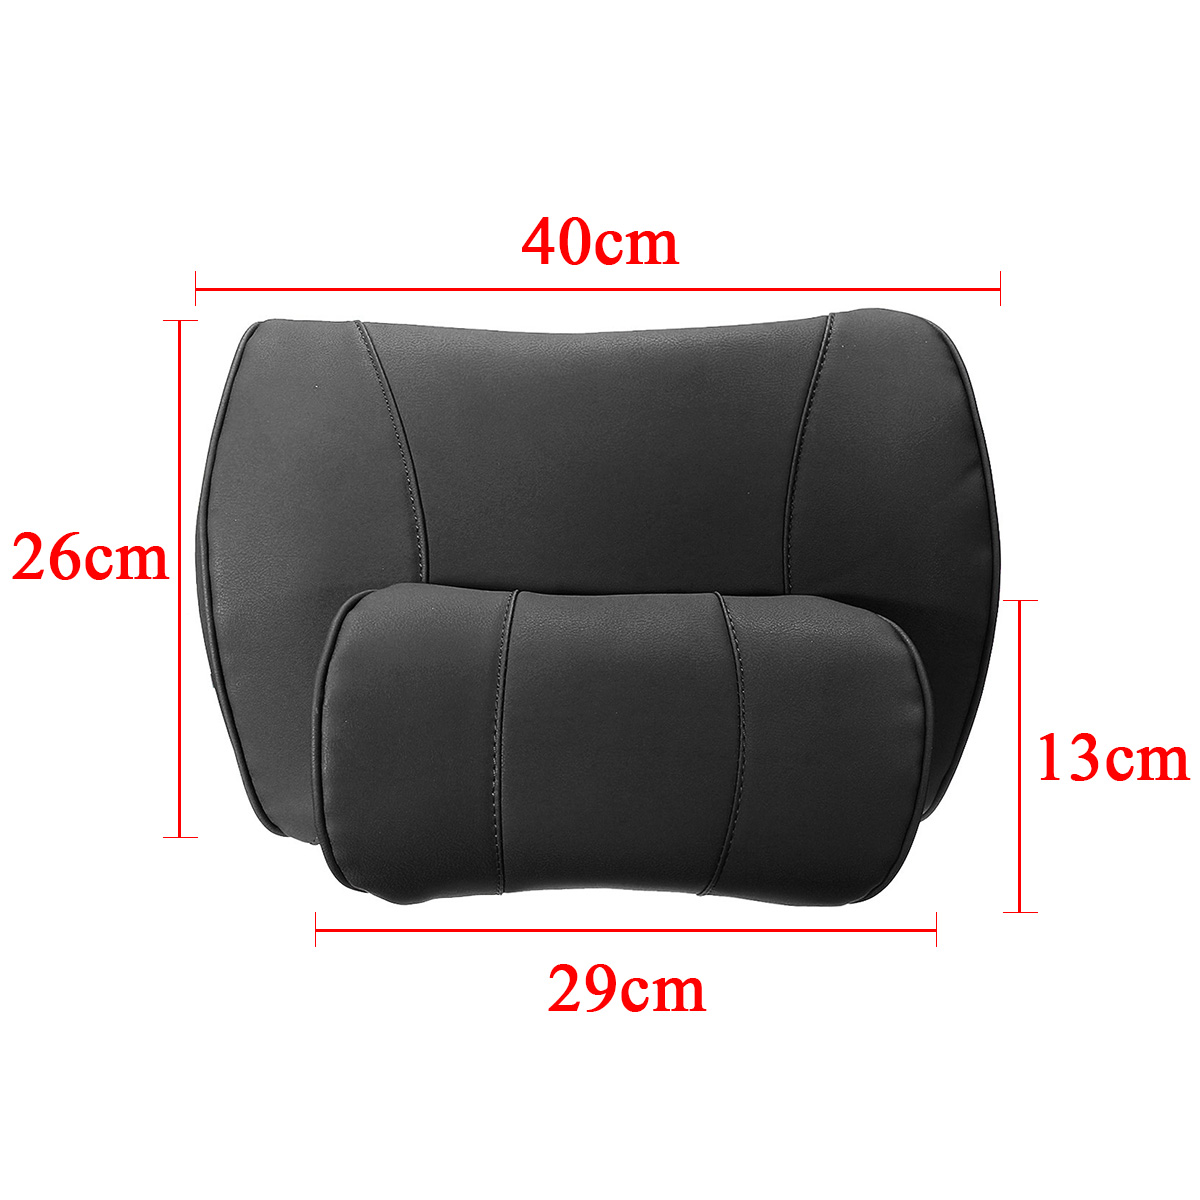 Removable Lumbar Pillow for Car Made with High Density Memory foam and PU Leather for Back Pain relief 5